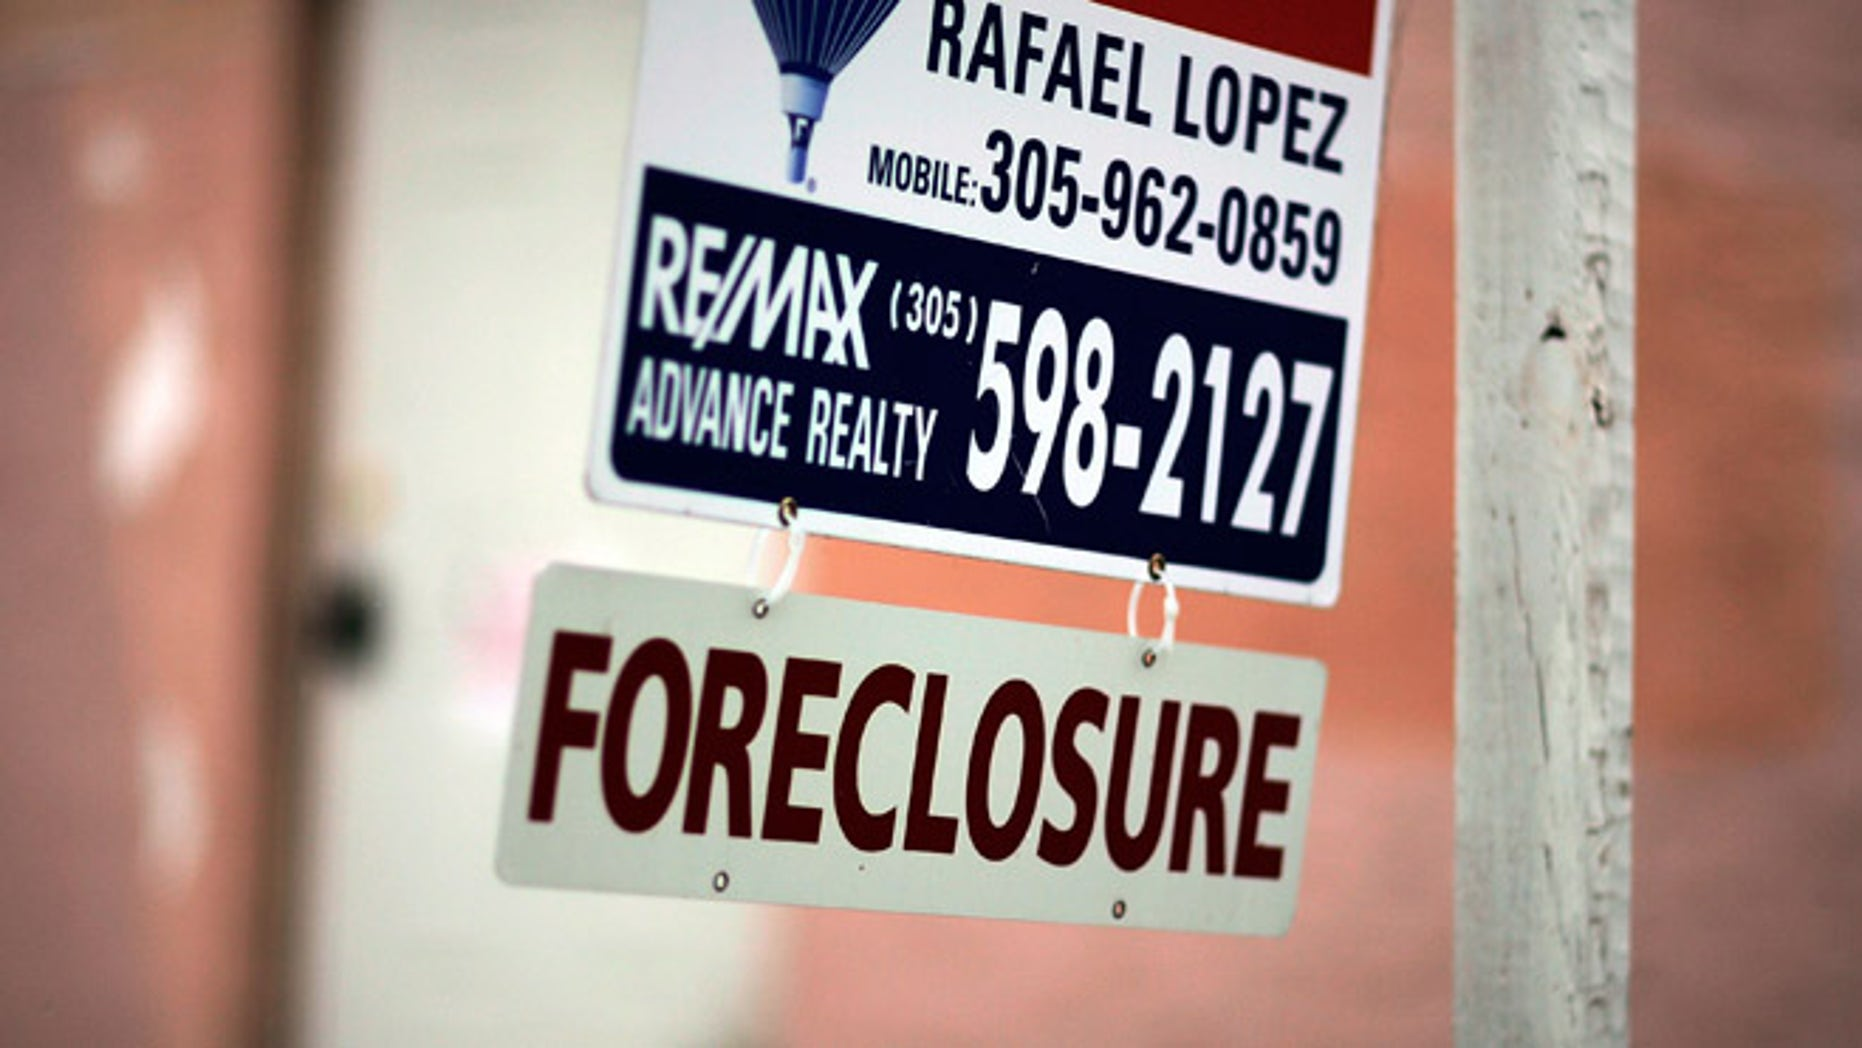 MIAMI - SEPTEMBER 18:  A foreclosure sign hangs in front of a home September 18, 2007 in Miami, Florida. According to August numbers released by RealtyTrac, delinquencies and defaults more than doubled versus August 2006 and jumped 36 percent from July. The number is the highest number of foreclosure filings reported in a single month since the company began tracking monthly filings two years ago.  (Photo by Joe Raedle/Getty Images)